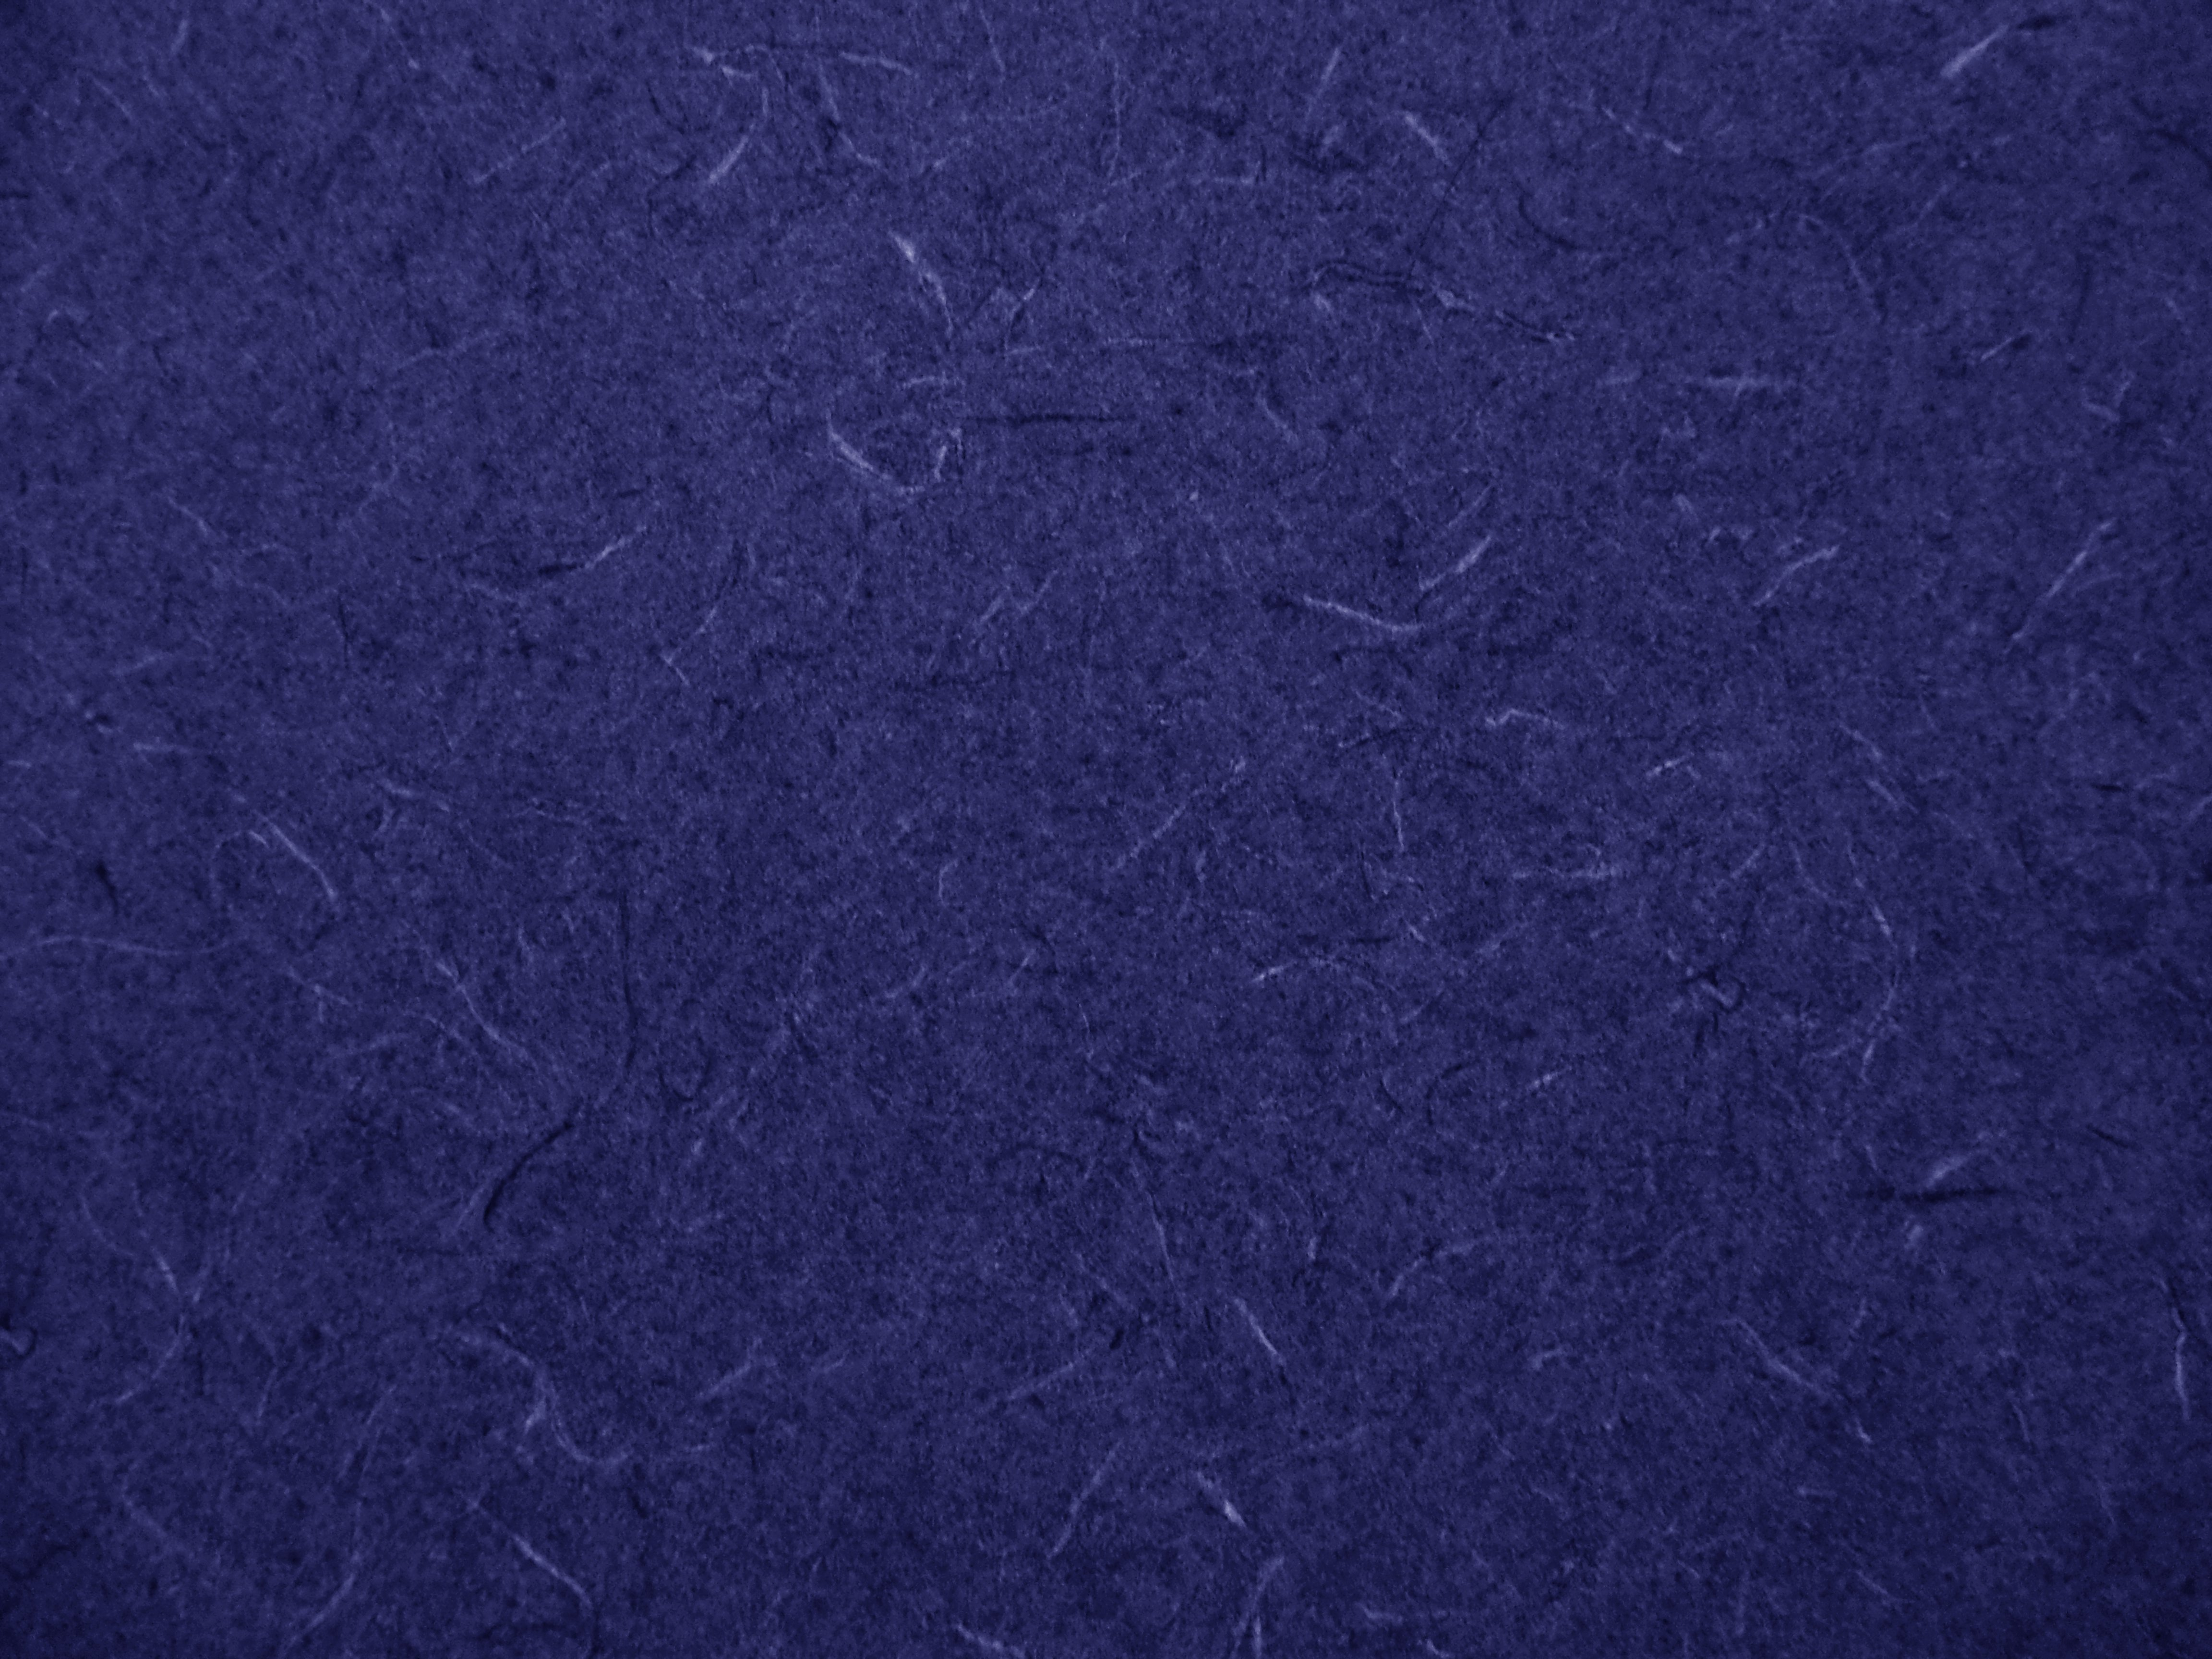 Navy Blue Abstract Background Navy blue abst 4608x3456